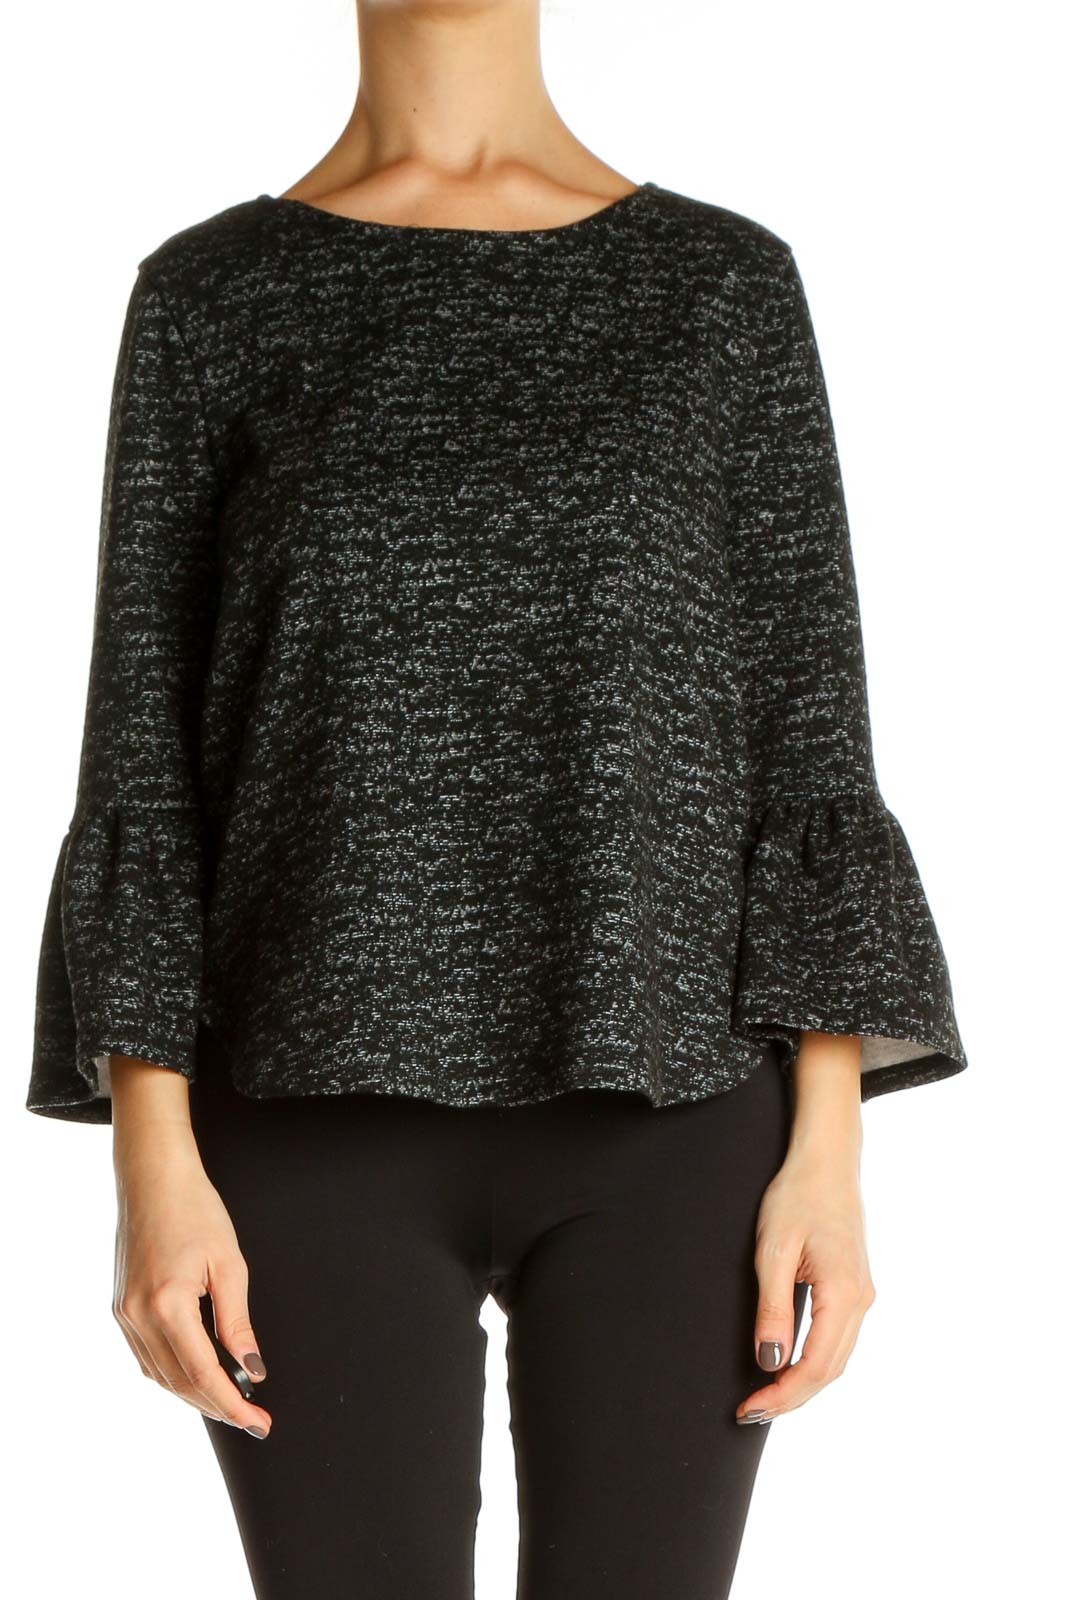 Black Textured All Day Wear Blouse Front